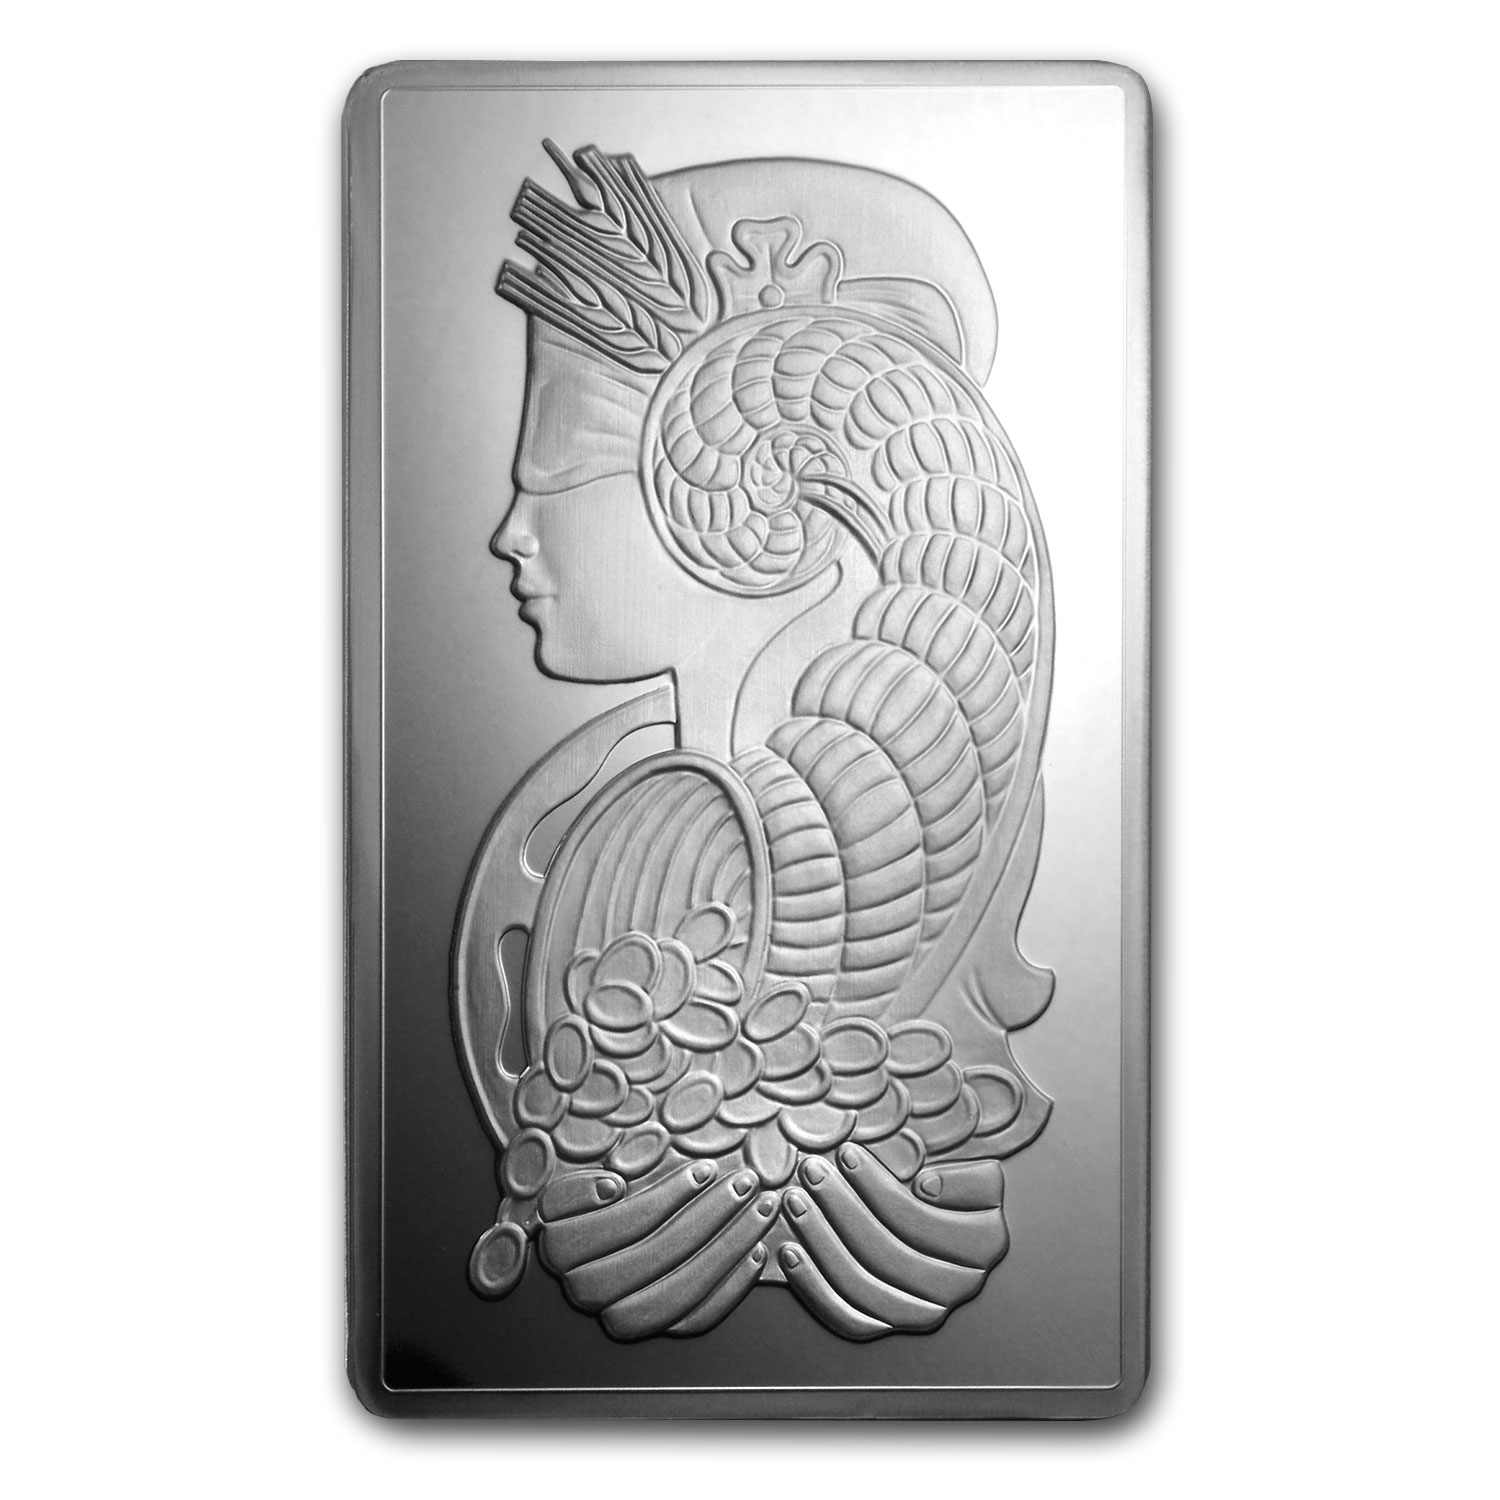 250 gram Silver Bar - Pamp Suisse (Fortuna) (Sept 14)